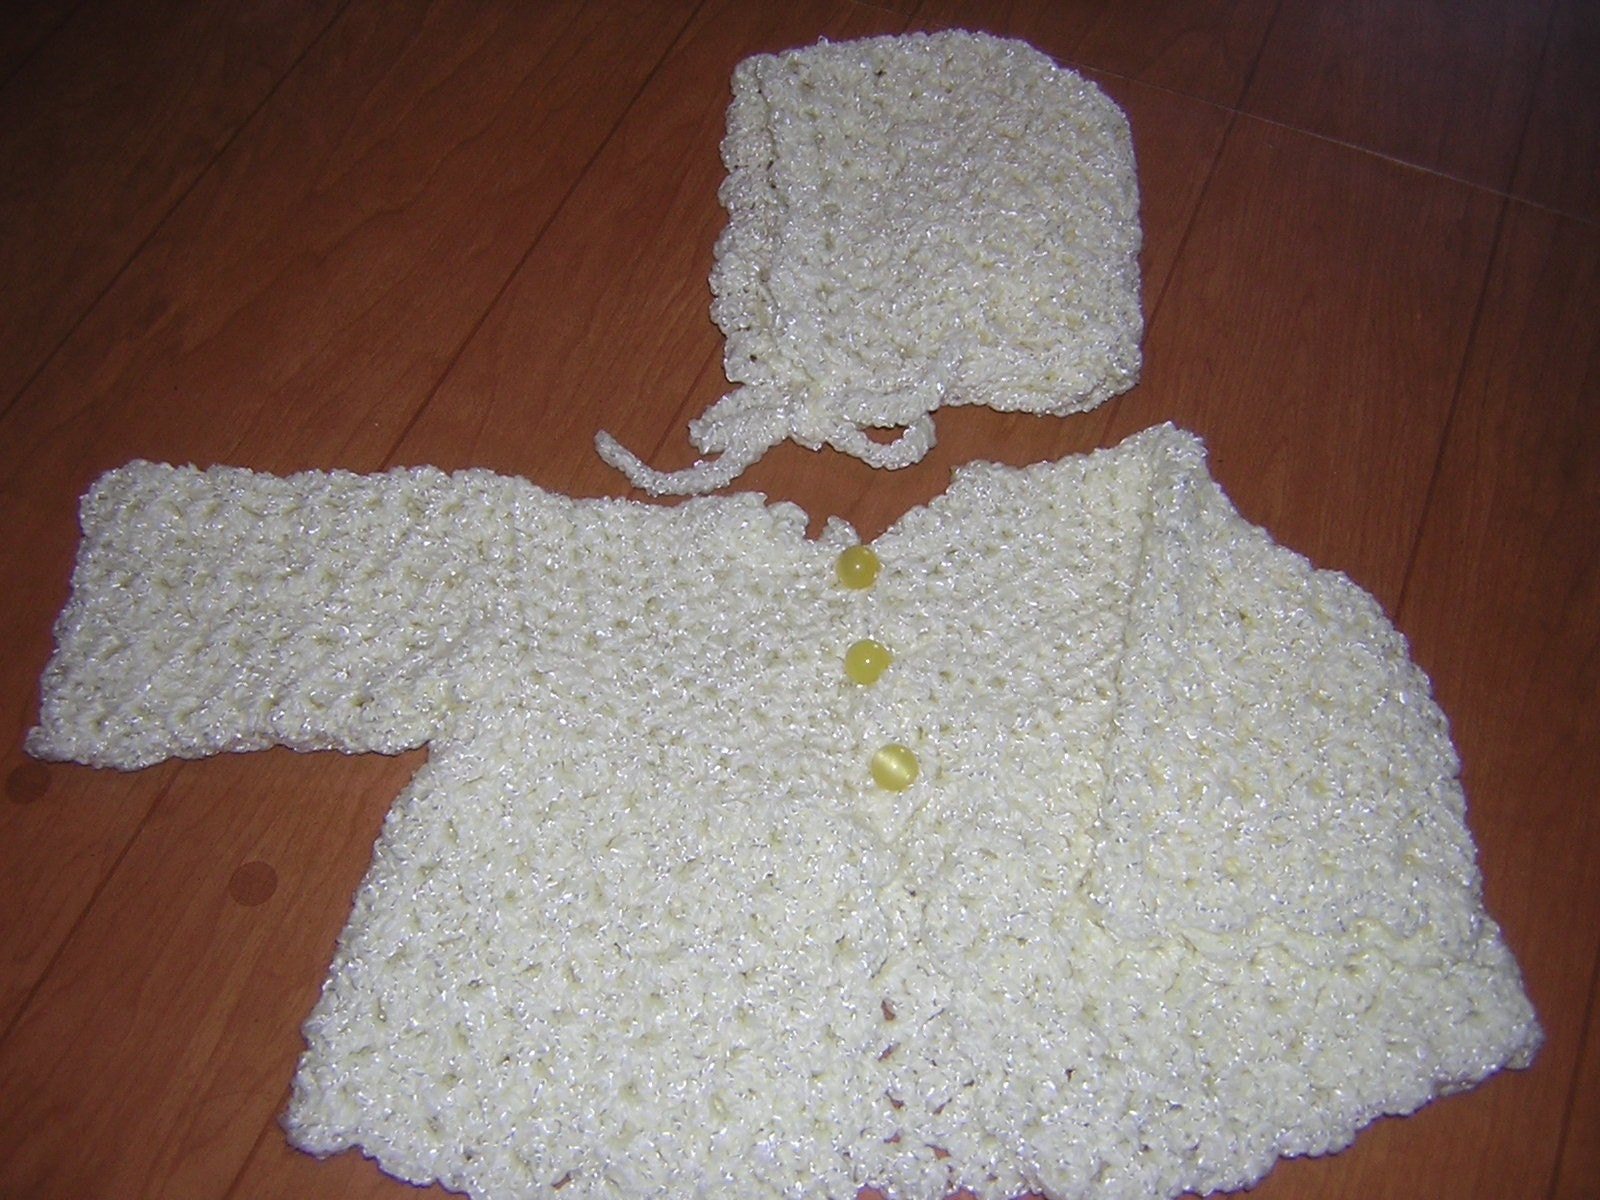 Crochet Baby Sweater : beginner-crochet-baby-sweater Images - Frompo - 1